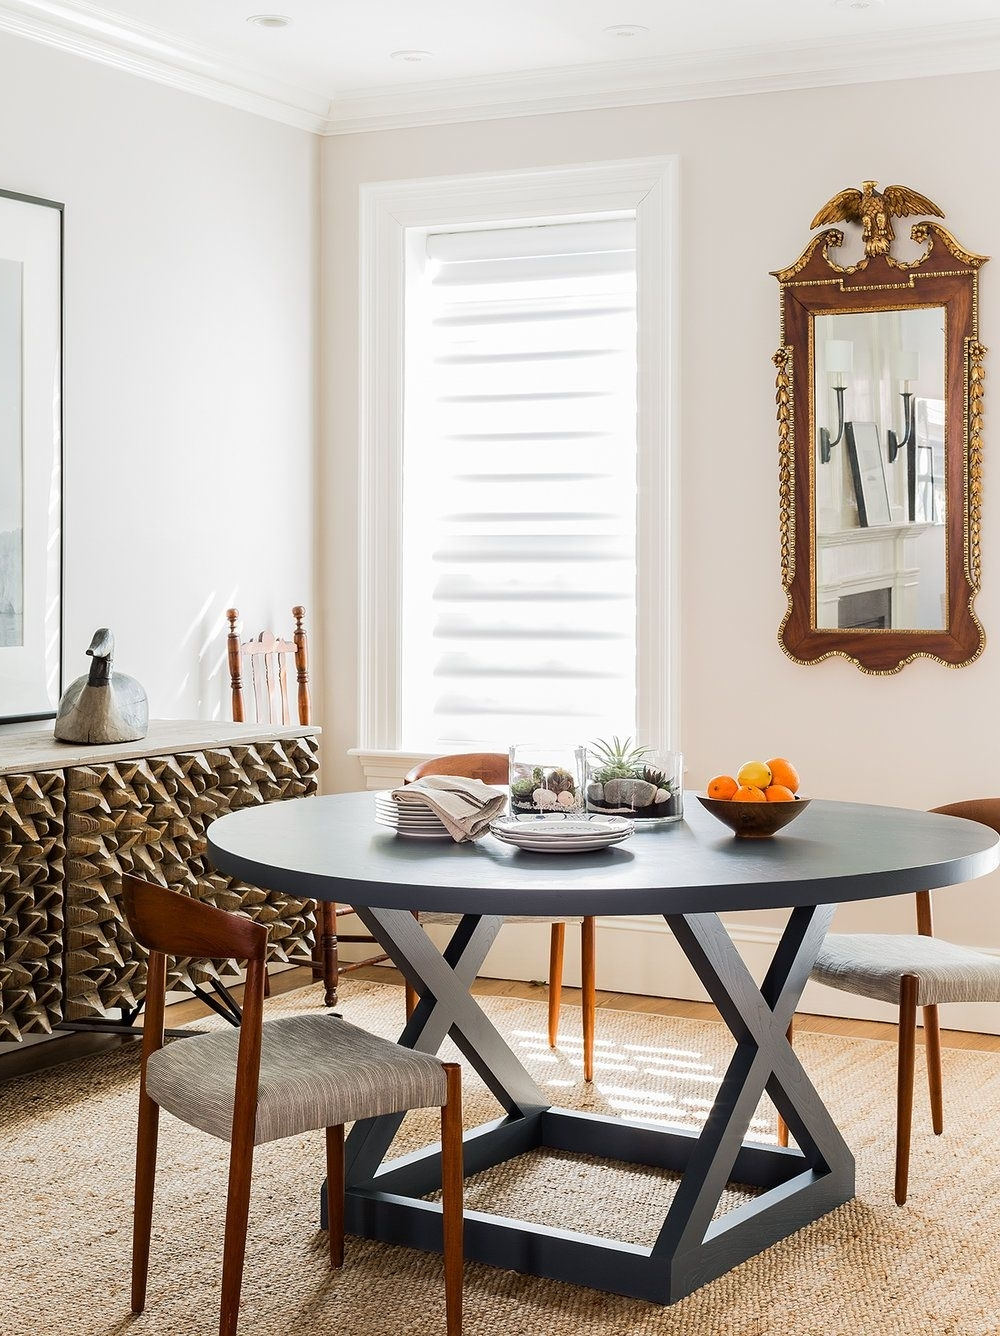 Most Recently Released Hudson Round Dining Tables Inside Round, Navy Dining Table Perfect For Small Spaces And Families (View 18 of 25)